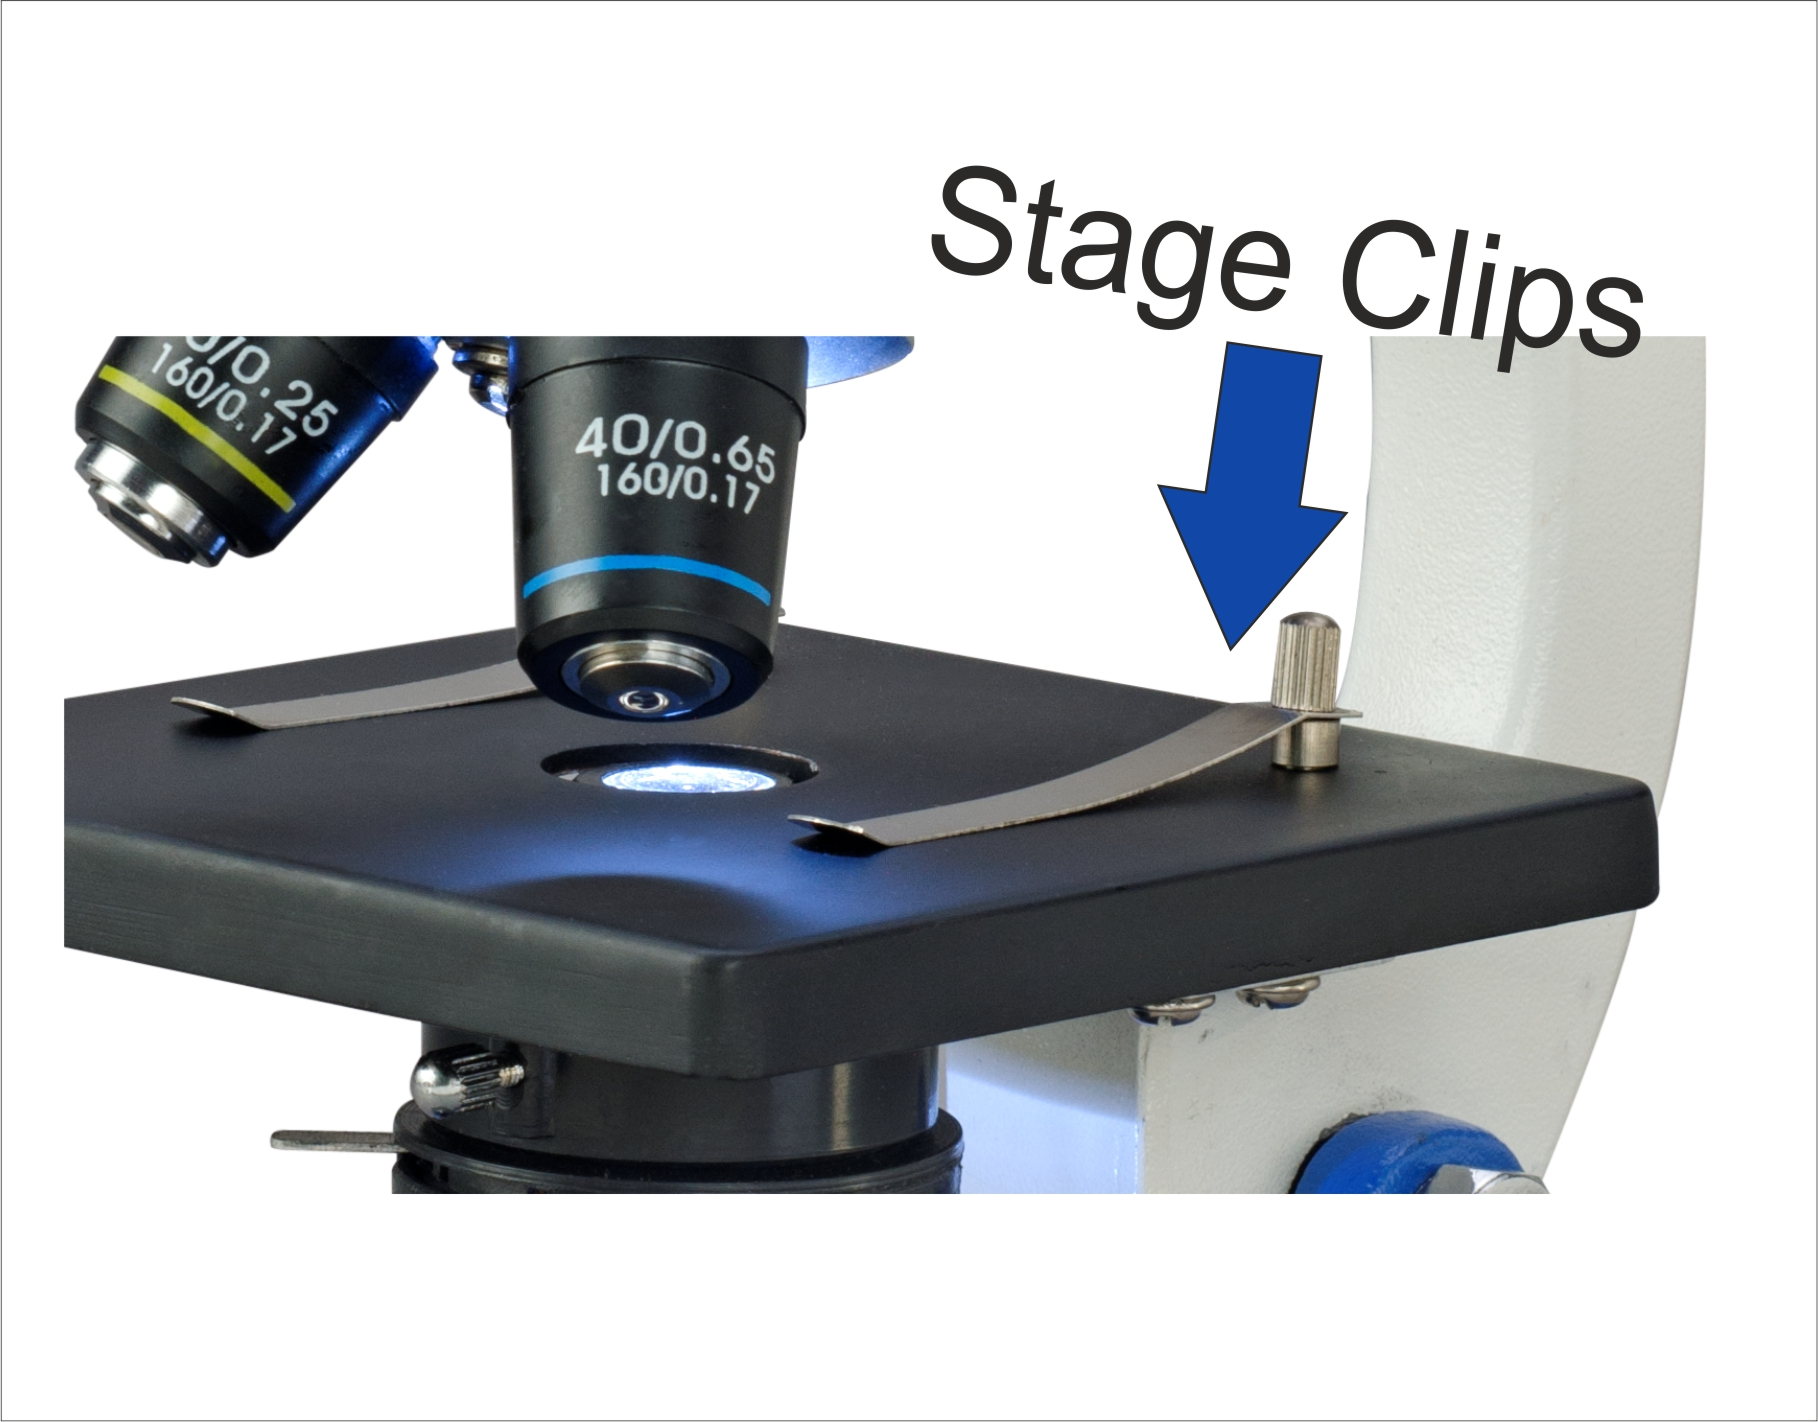 Buy Stage Clips for Student Microscope Online- Shopclues.com